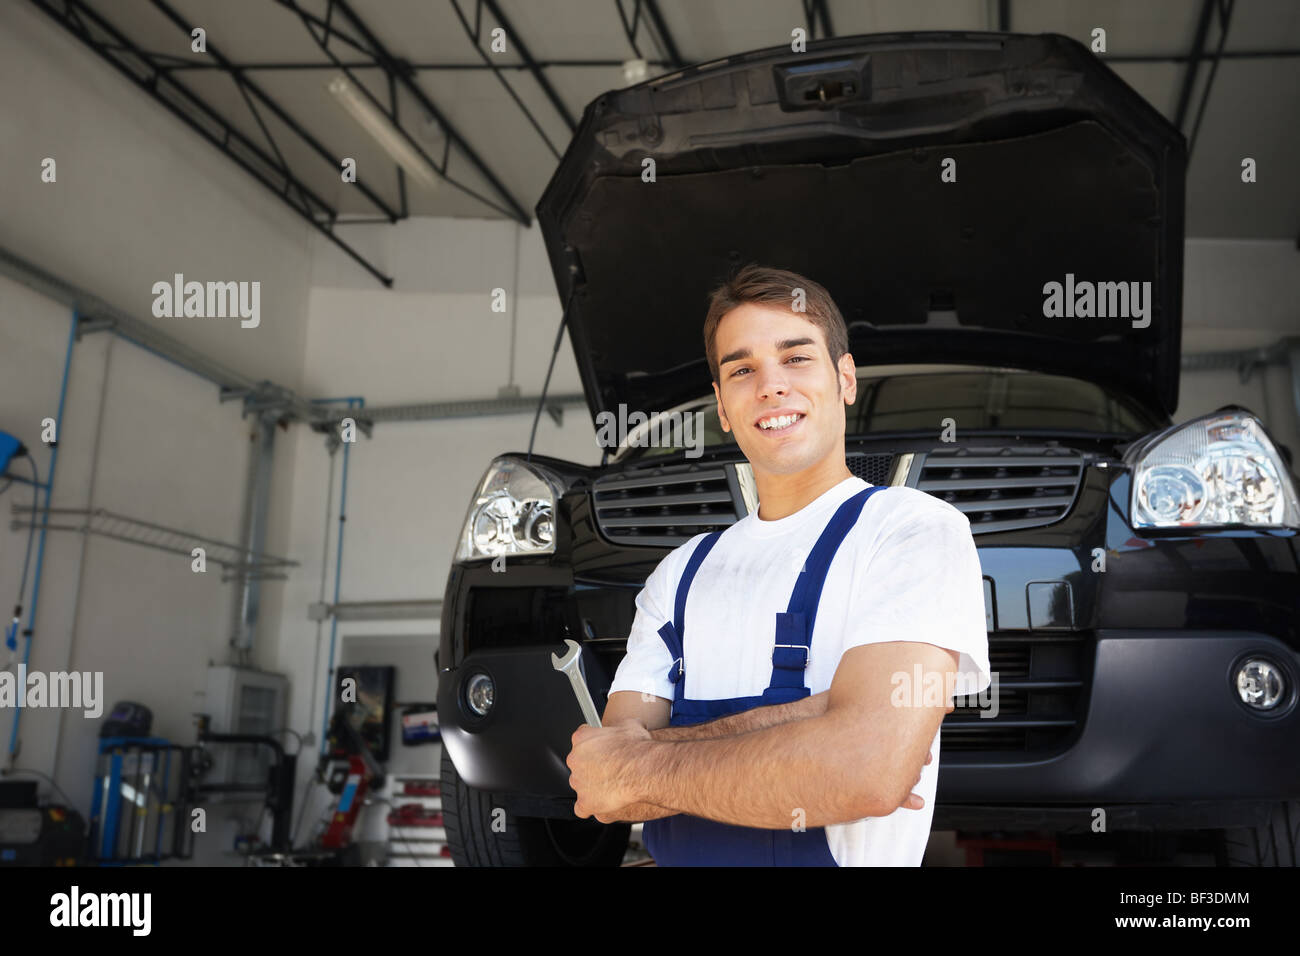 portrait of mechanic with arms folded - Stock Image